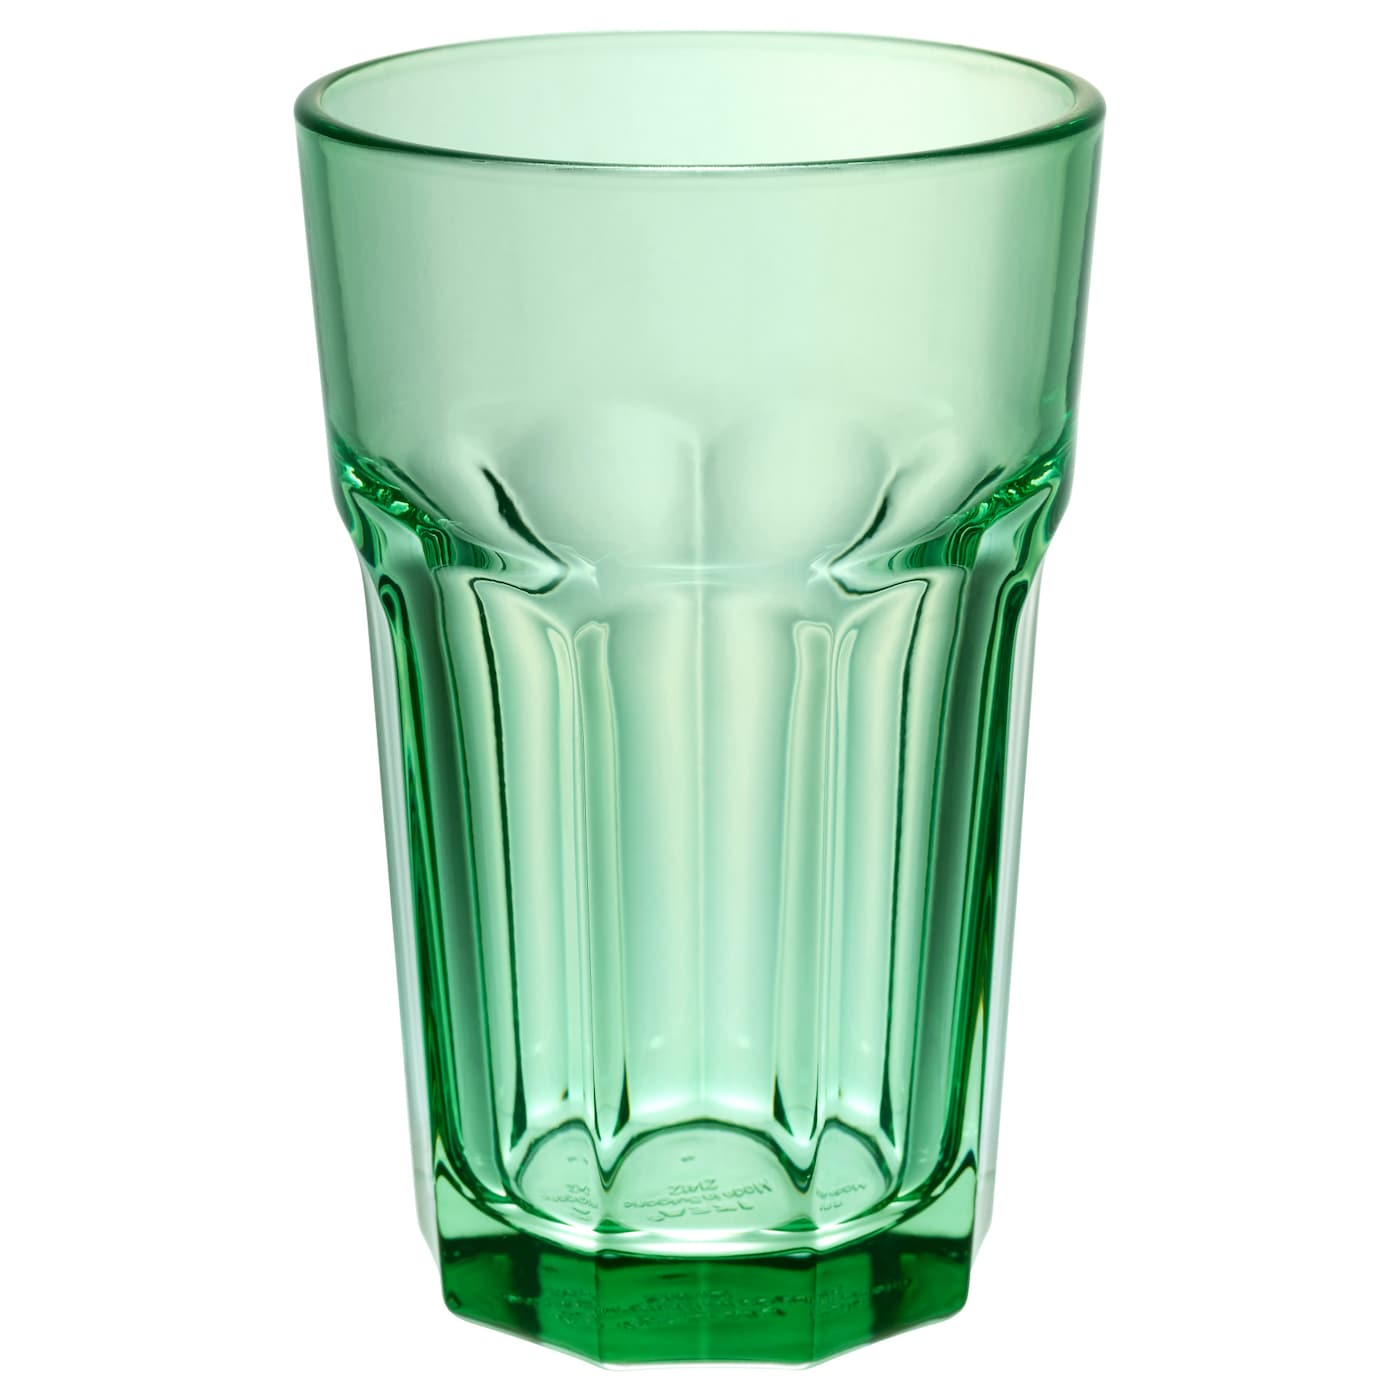 IKEA SOMMAR 2017 glass Also suitable for hot drinks.